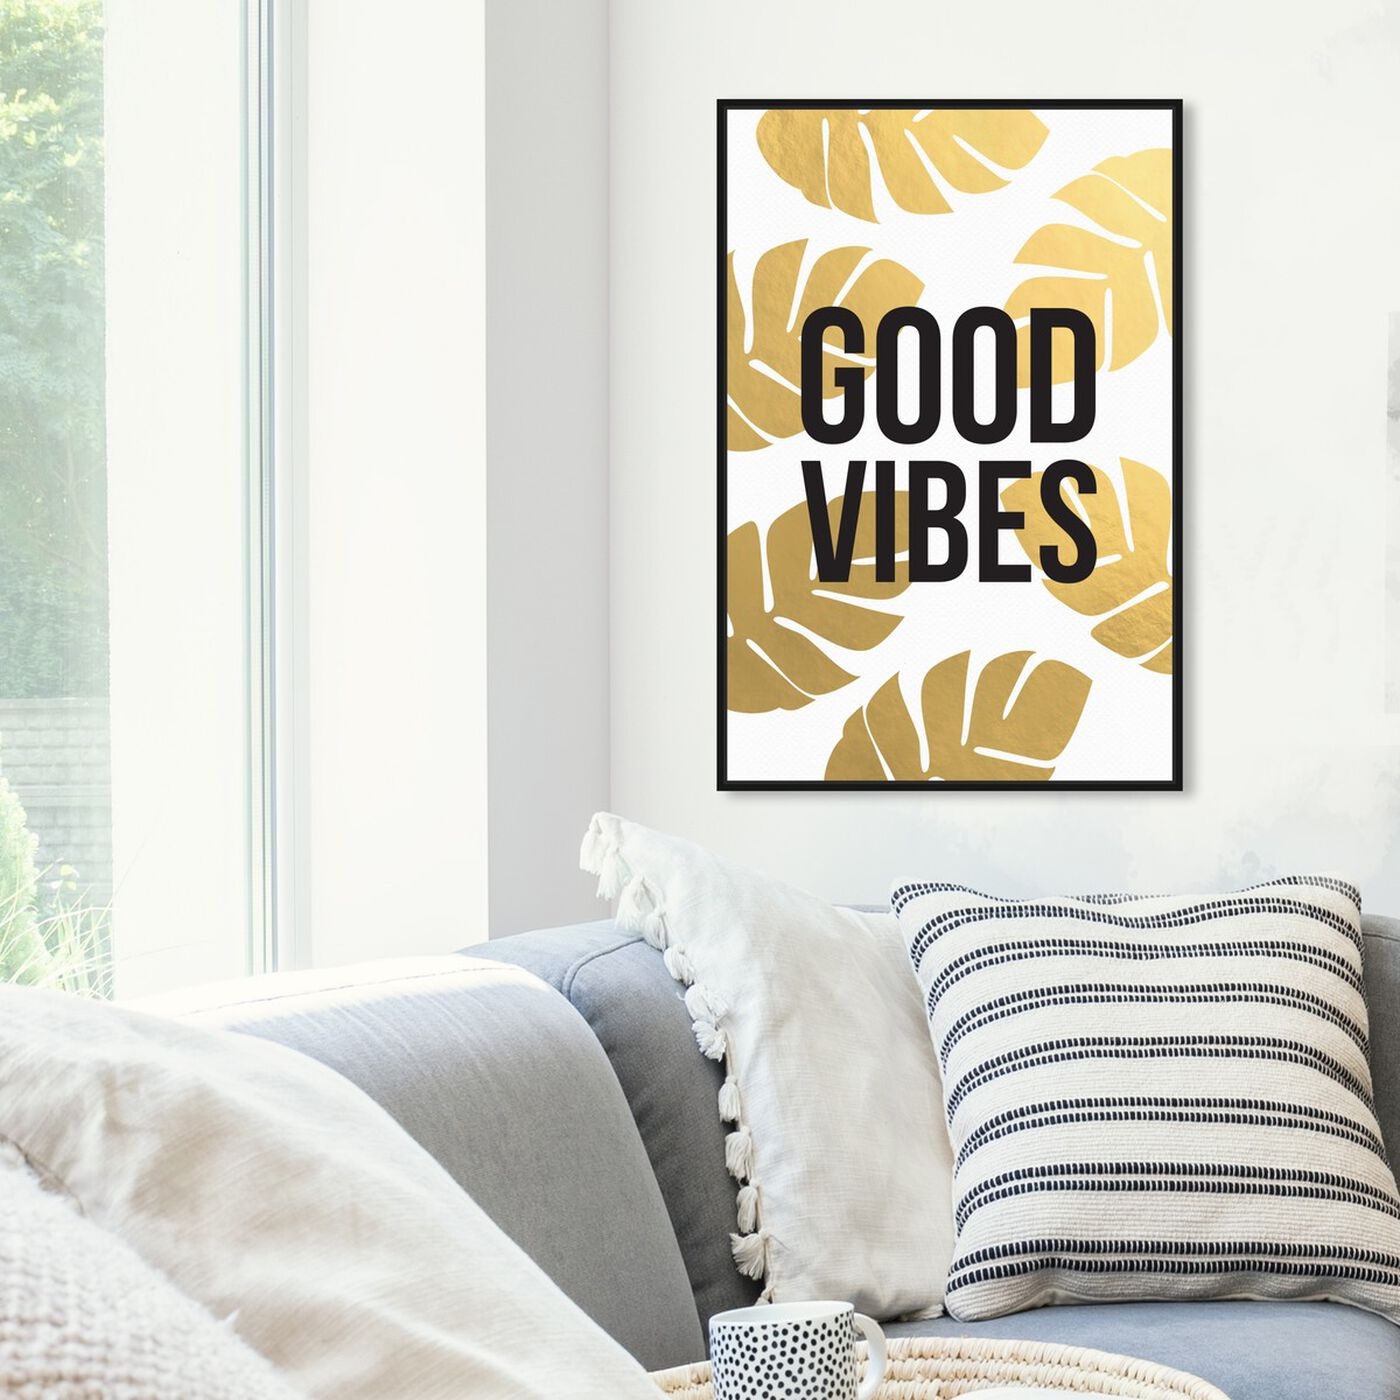 Hanging view of Good Vibes featuring typography and quotes and motivational quotes and sayings art.